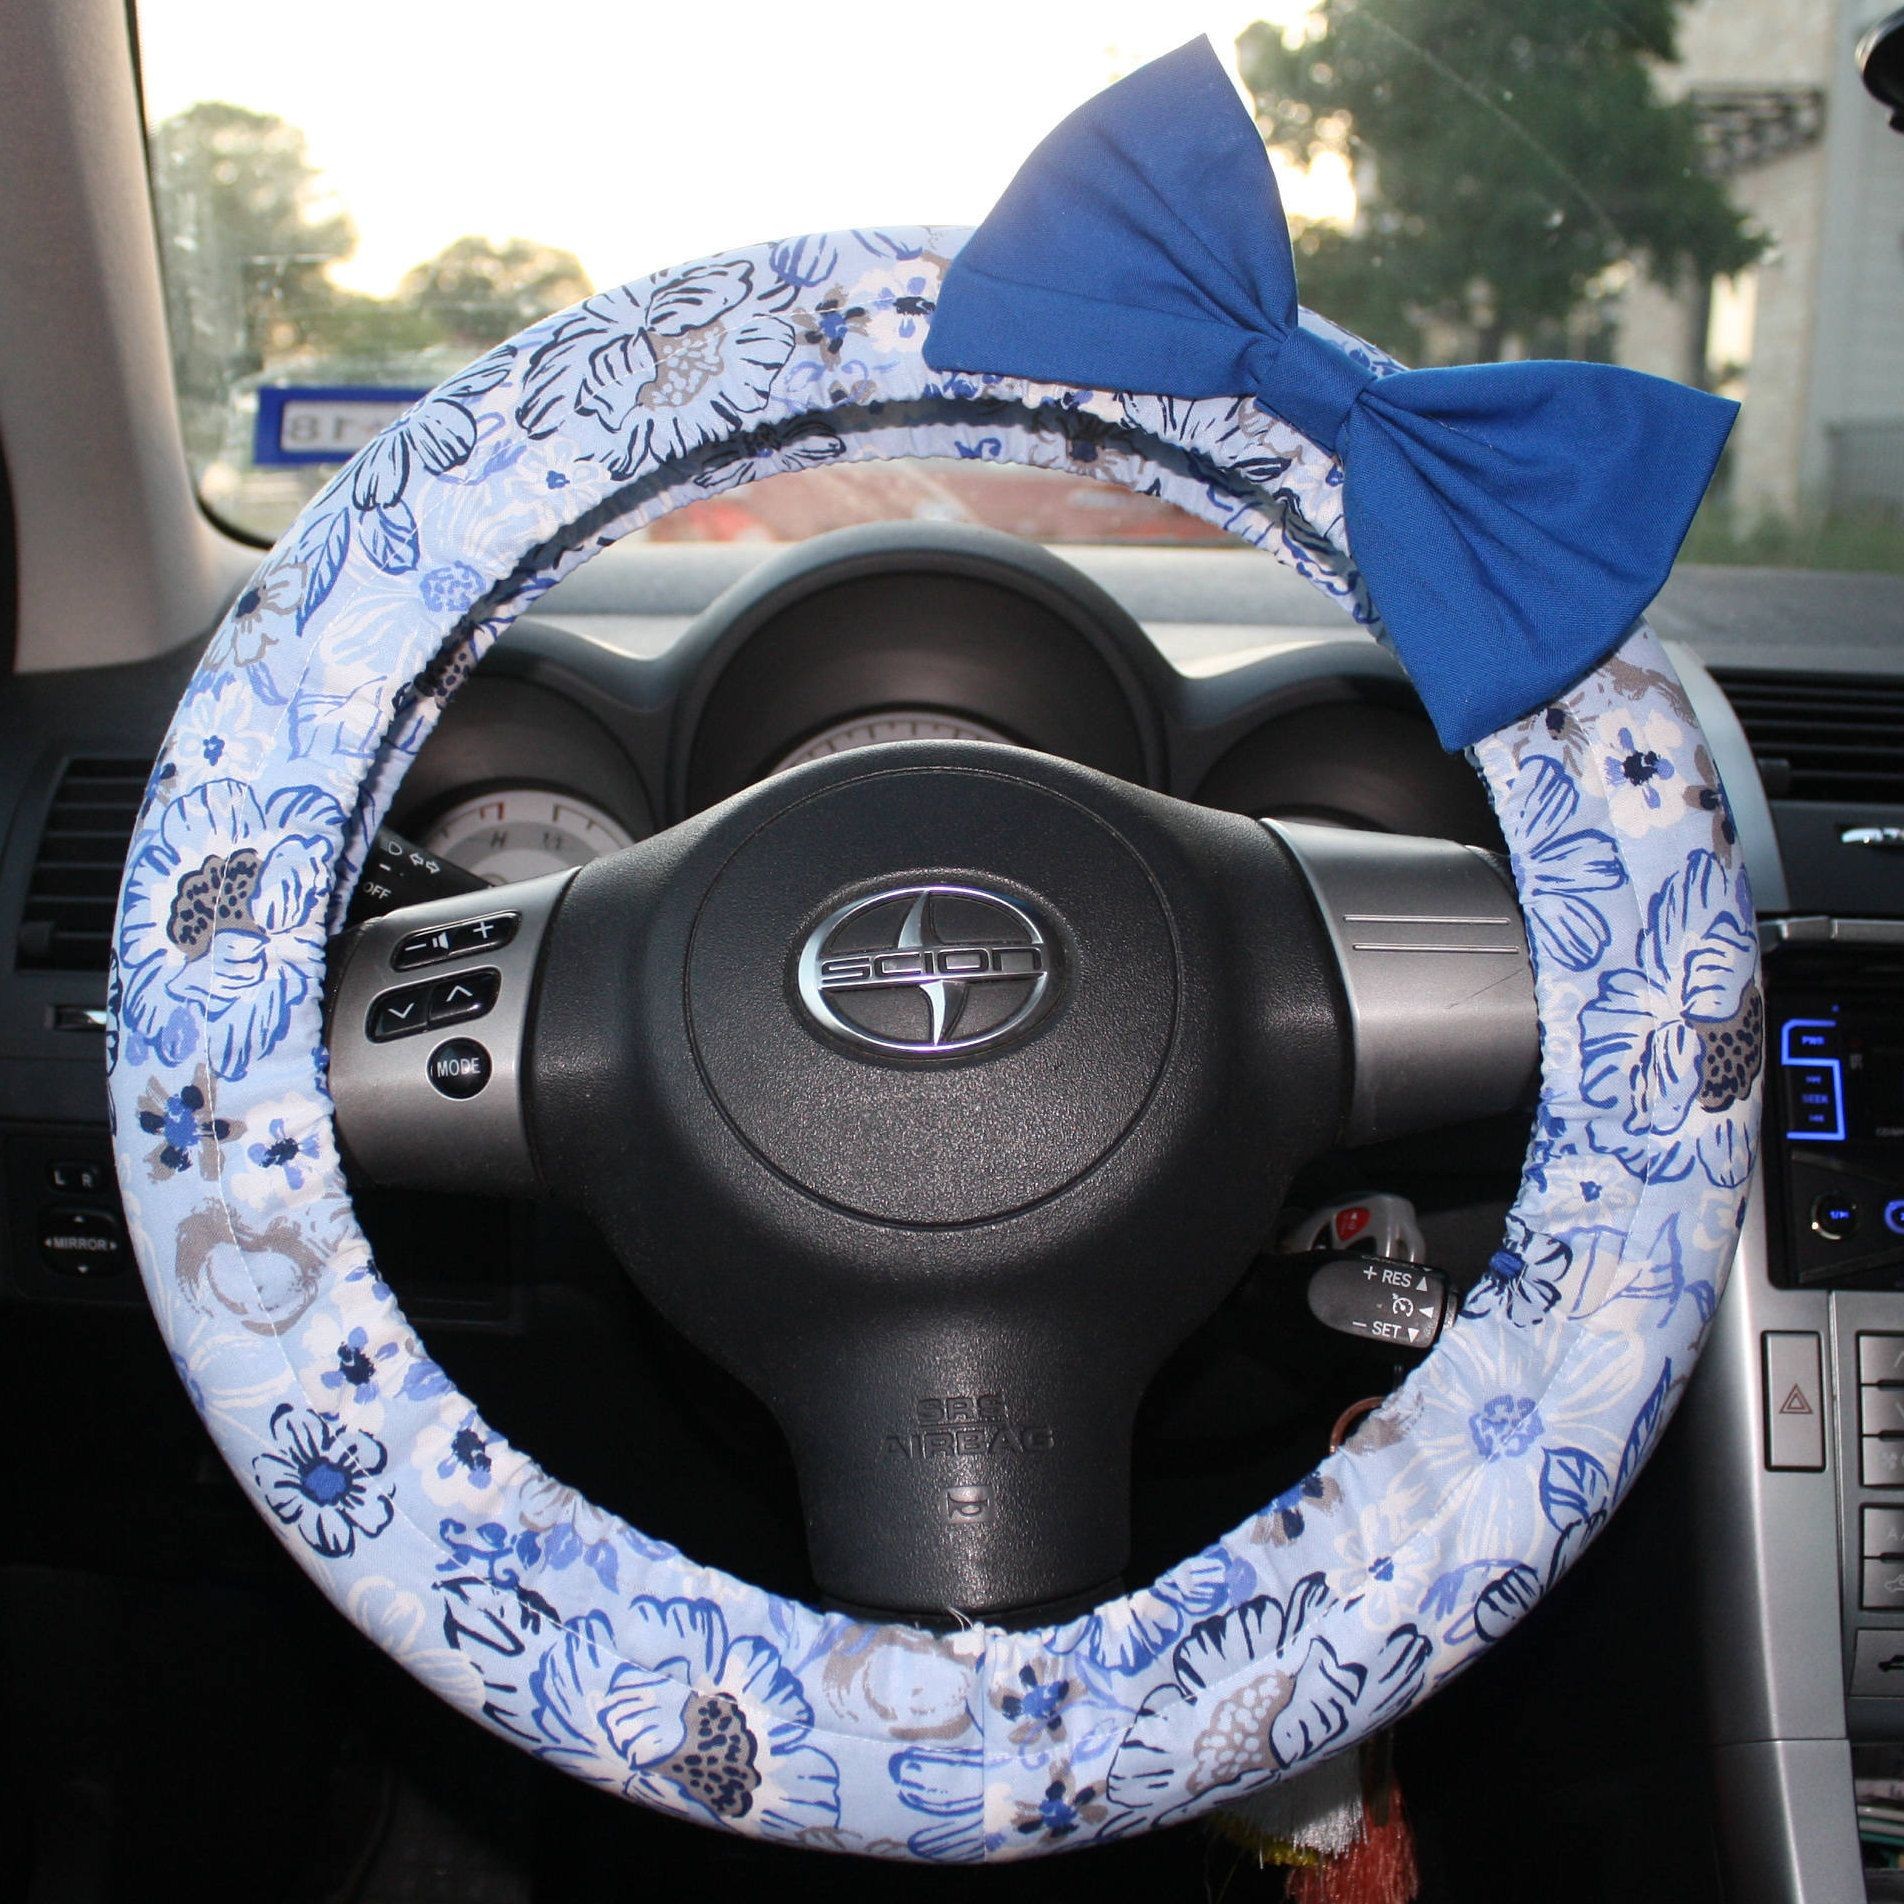 Navy And Royal Blue Floral Steering Wheel Cover With Coordinating Teal Bow  Pin Pin  Cute